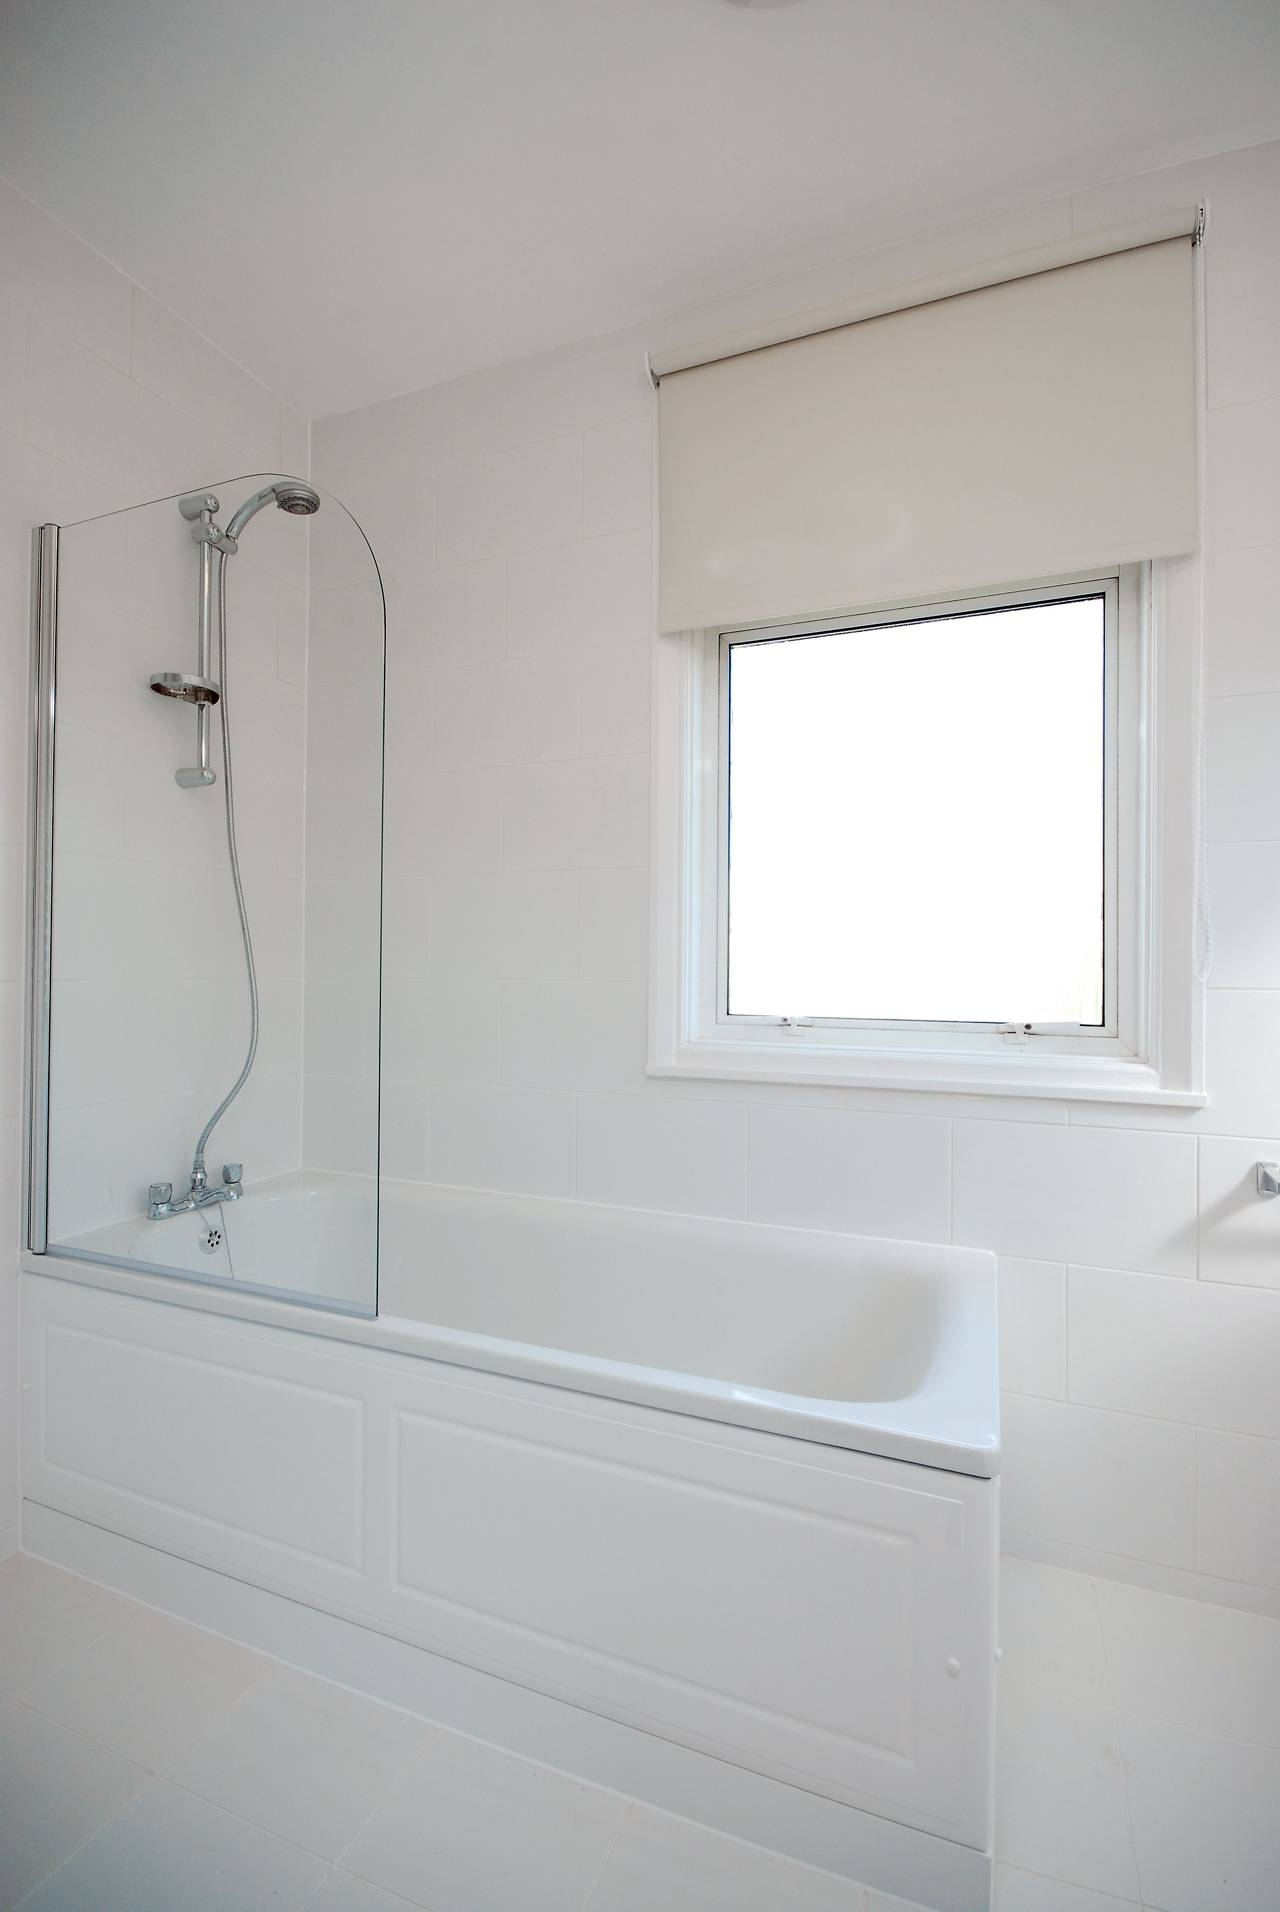 1 bedroom flat to rent seymour road chiswick w w4 5es for W 4 bathrooms chiswick